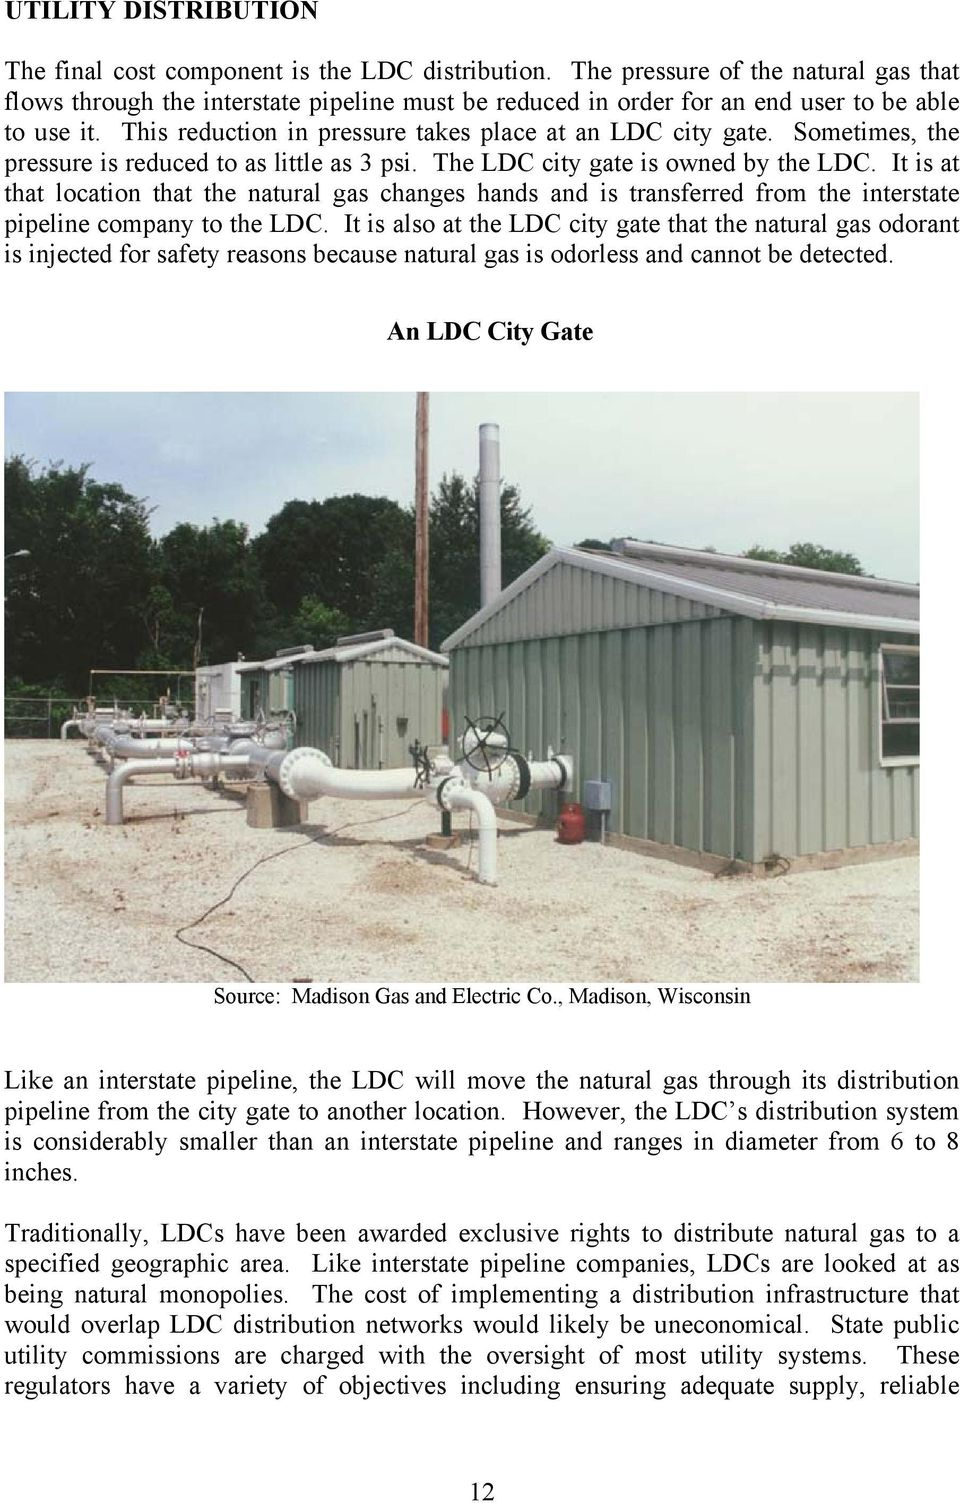 Sometimes, the pressure is reduced to as little as 3 psi. The LDC city gate is owned by the LDC.